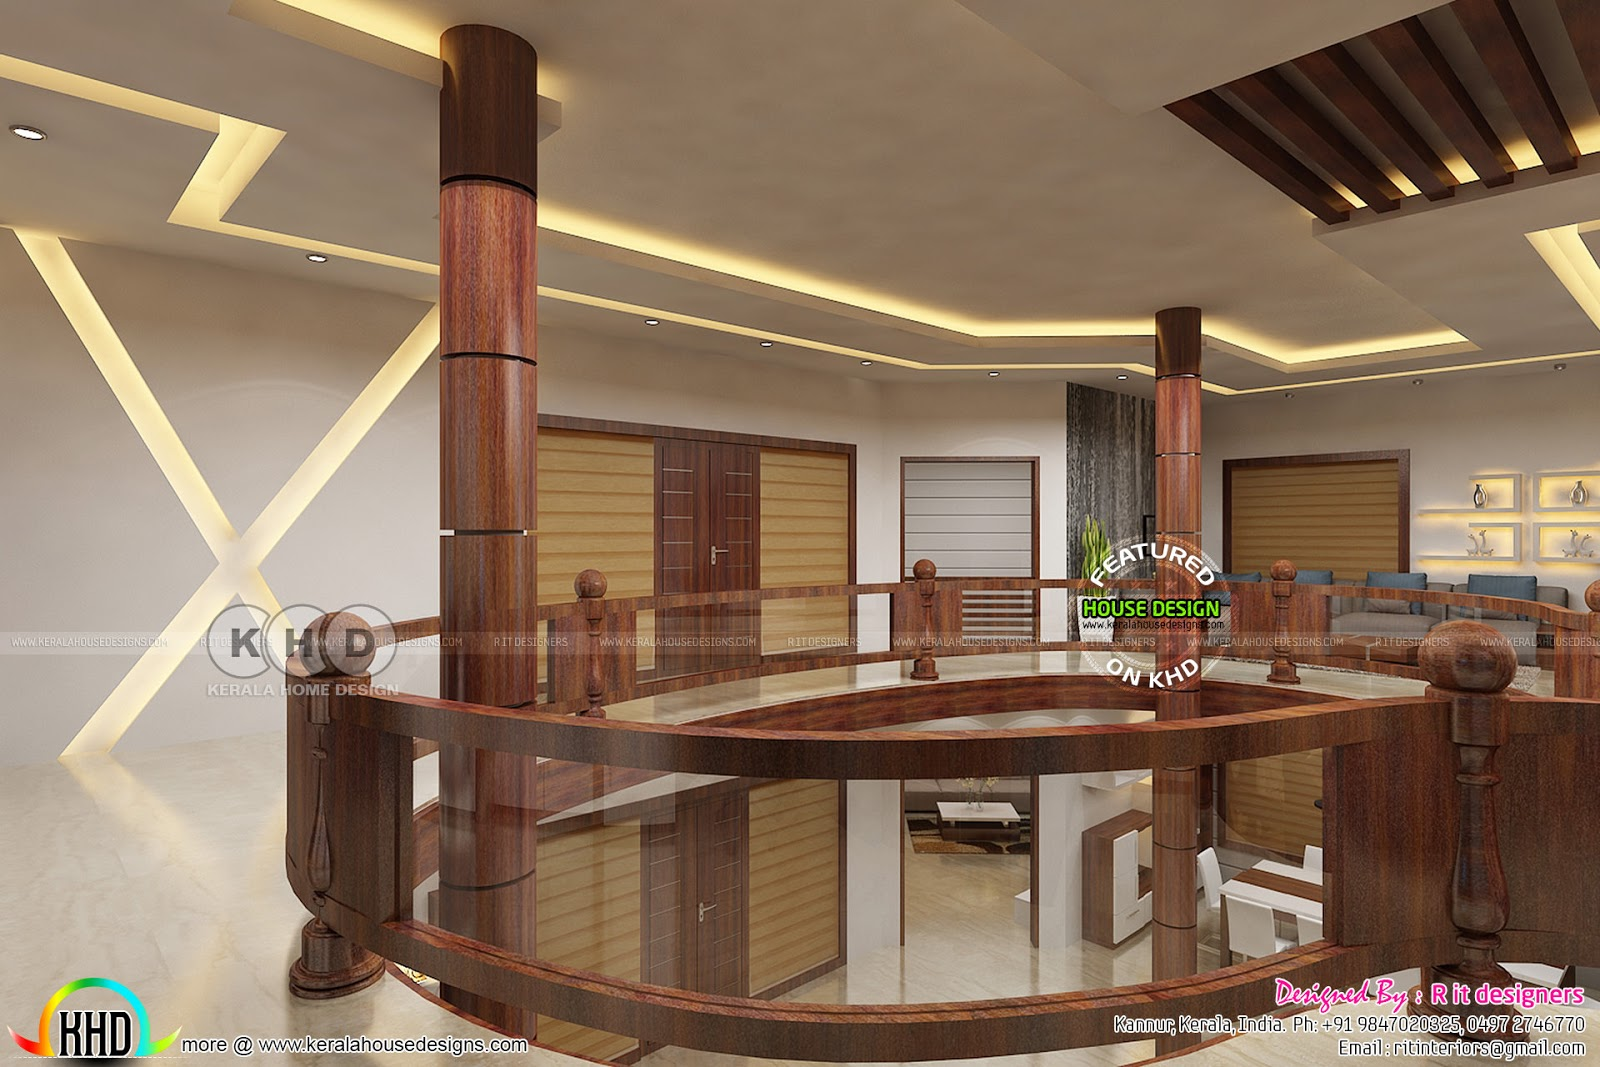 S Design Interieur Upper Floor Interior Designs By Rit Interiors Kerala